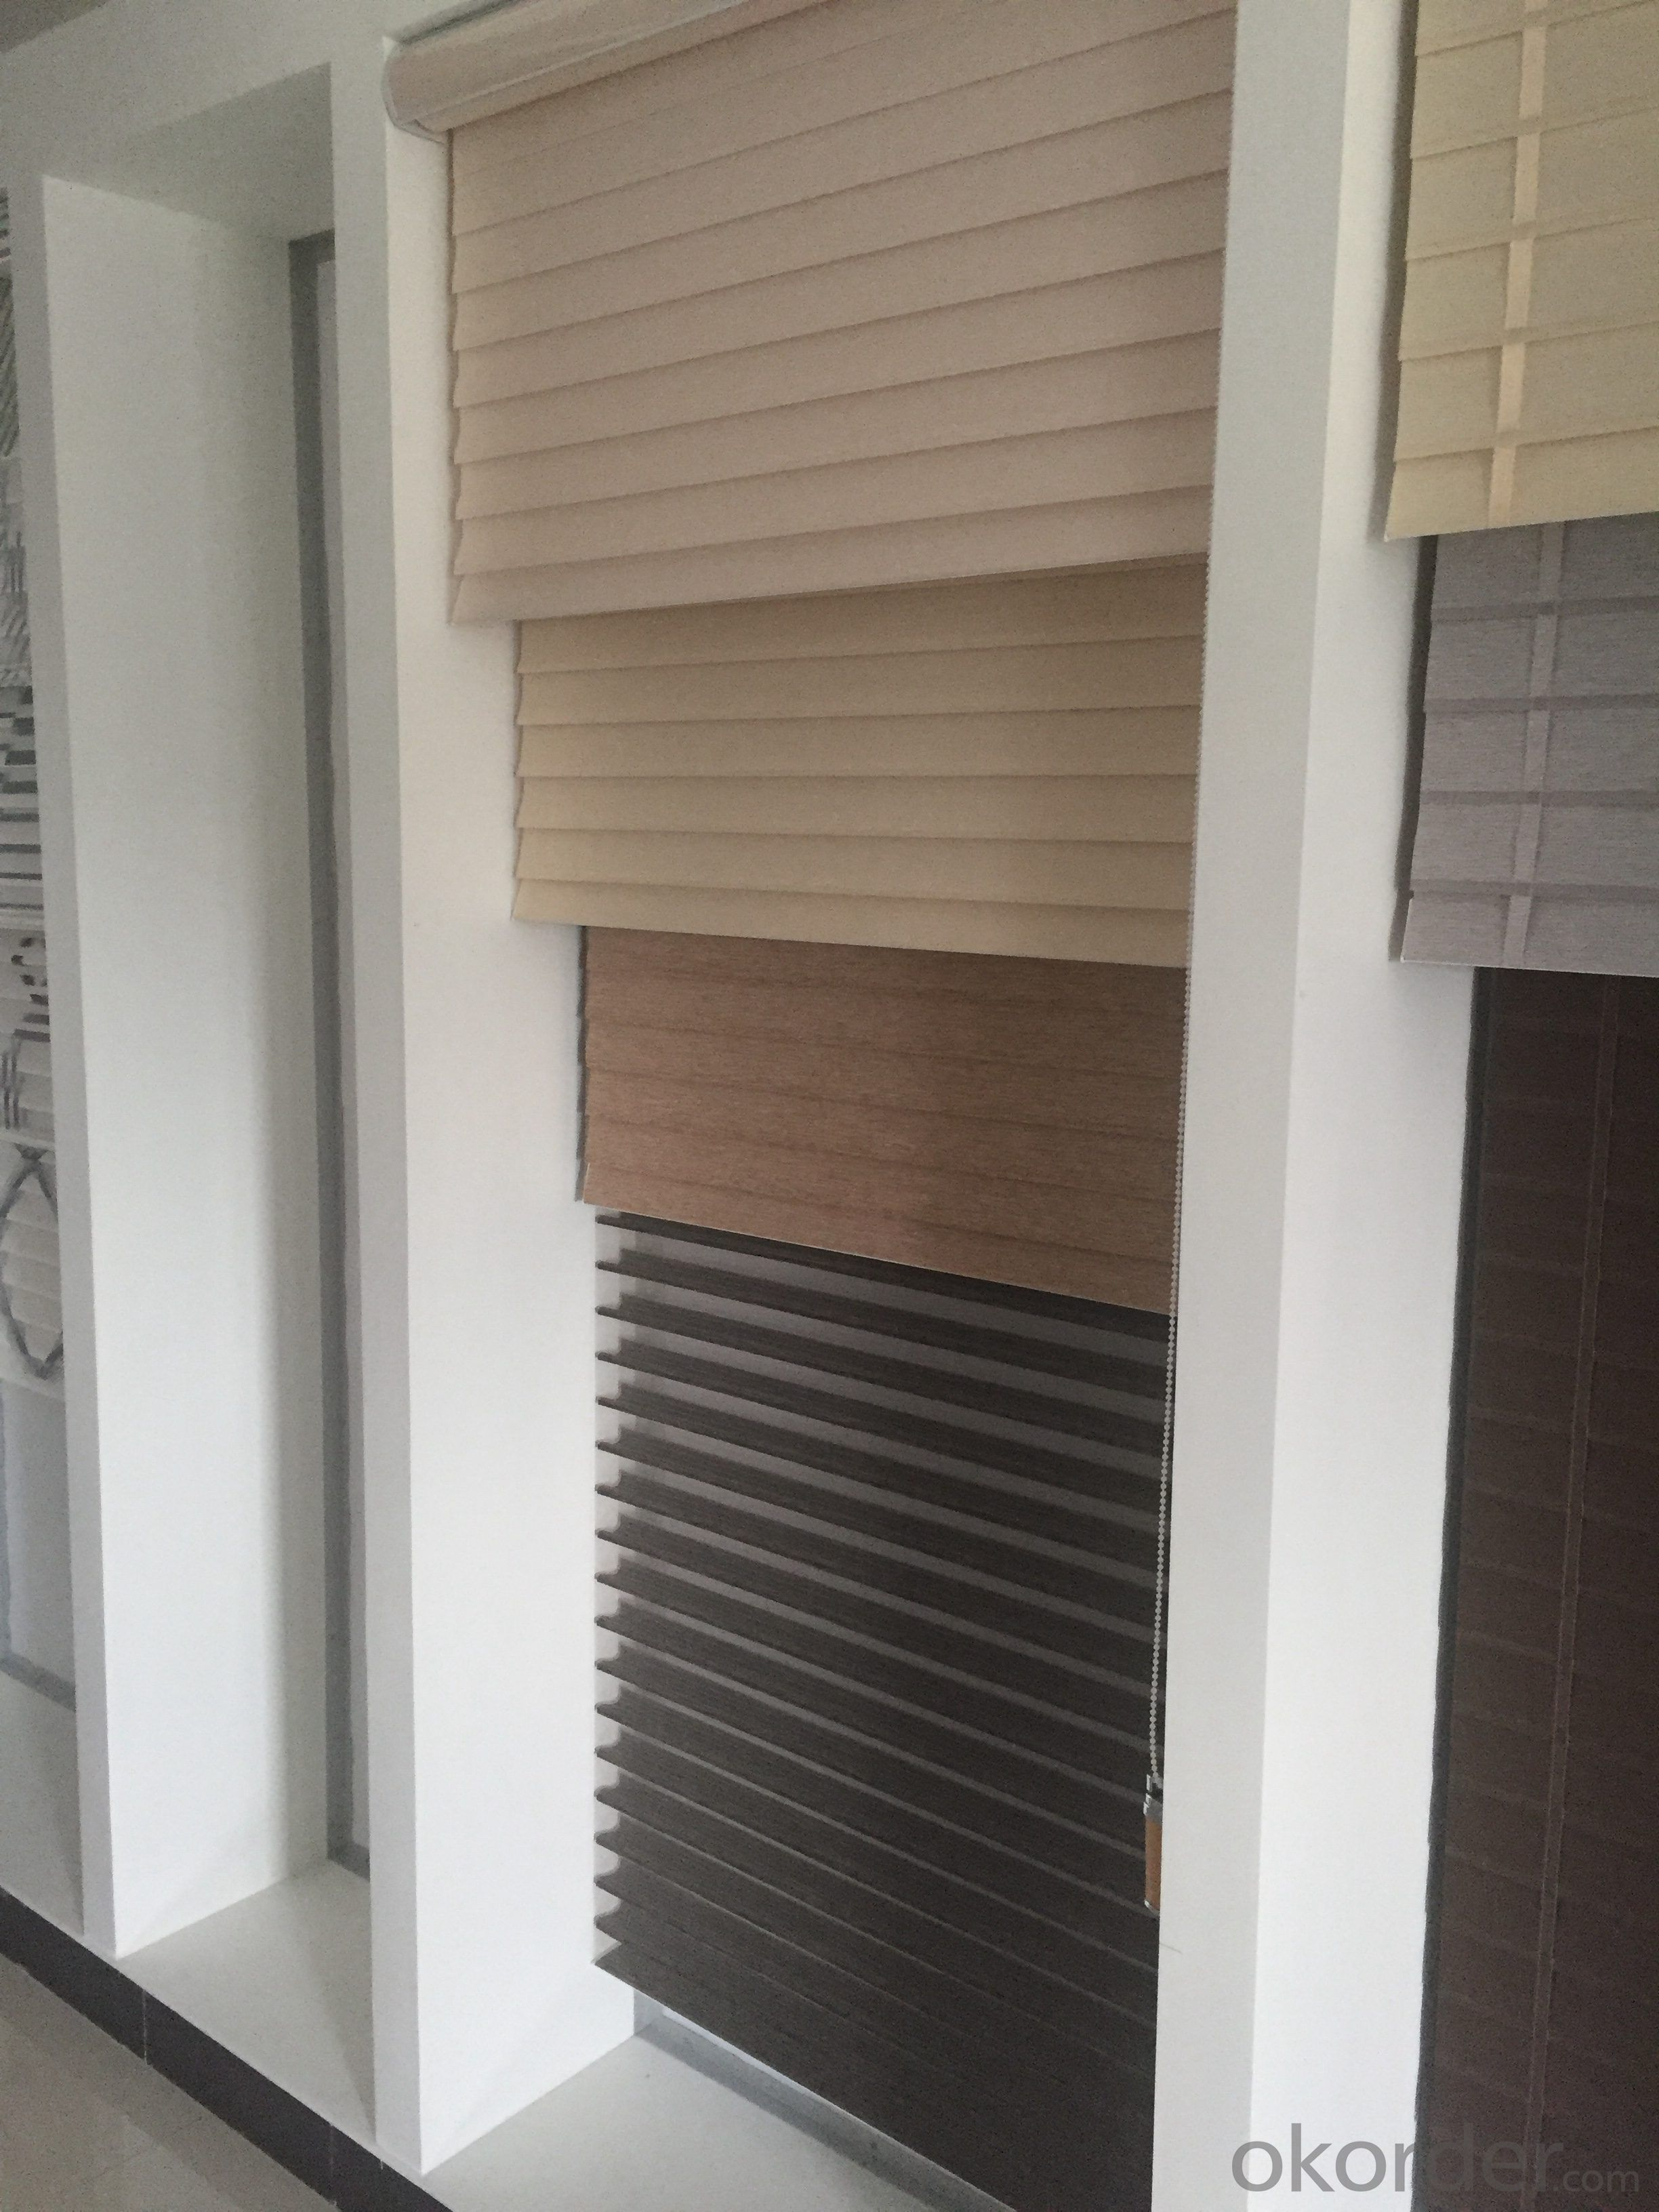 wood grey bamboo beige painted room for venetian curtains and wall window shutters navy brown dark darkndow blinds gray blue wooden glass colored clear amanda